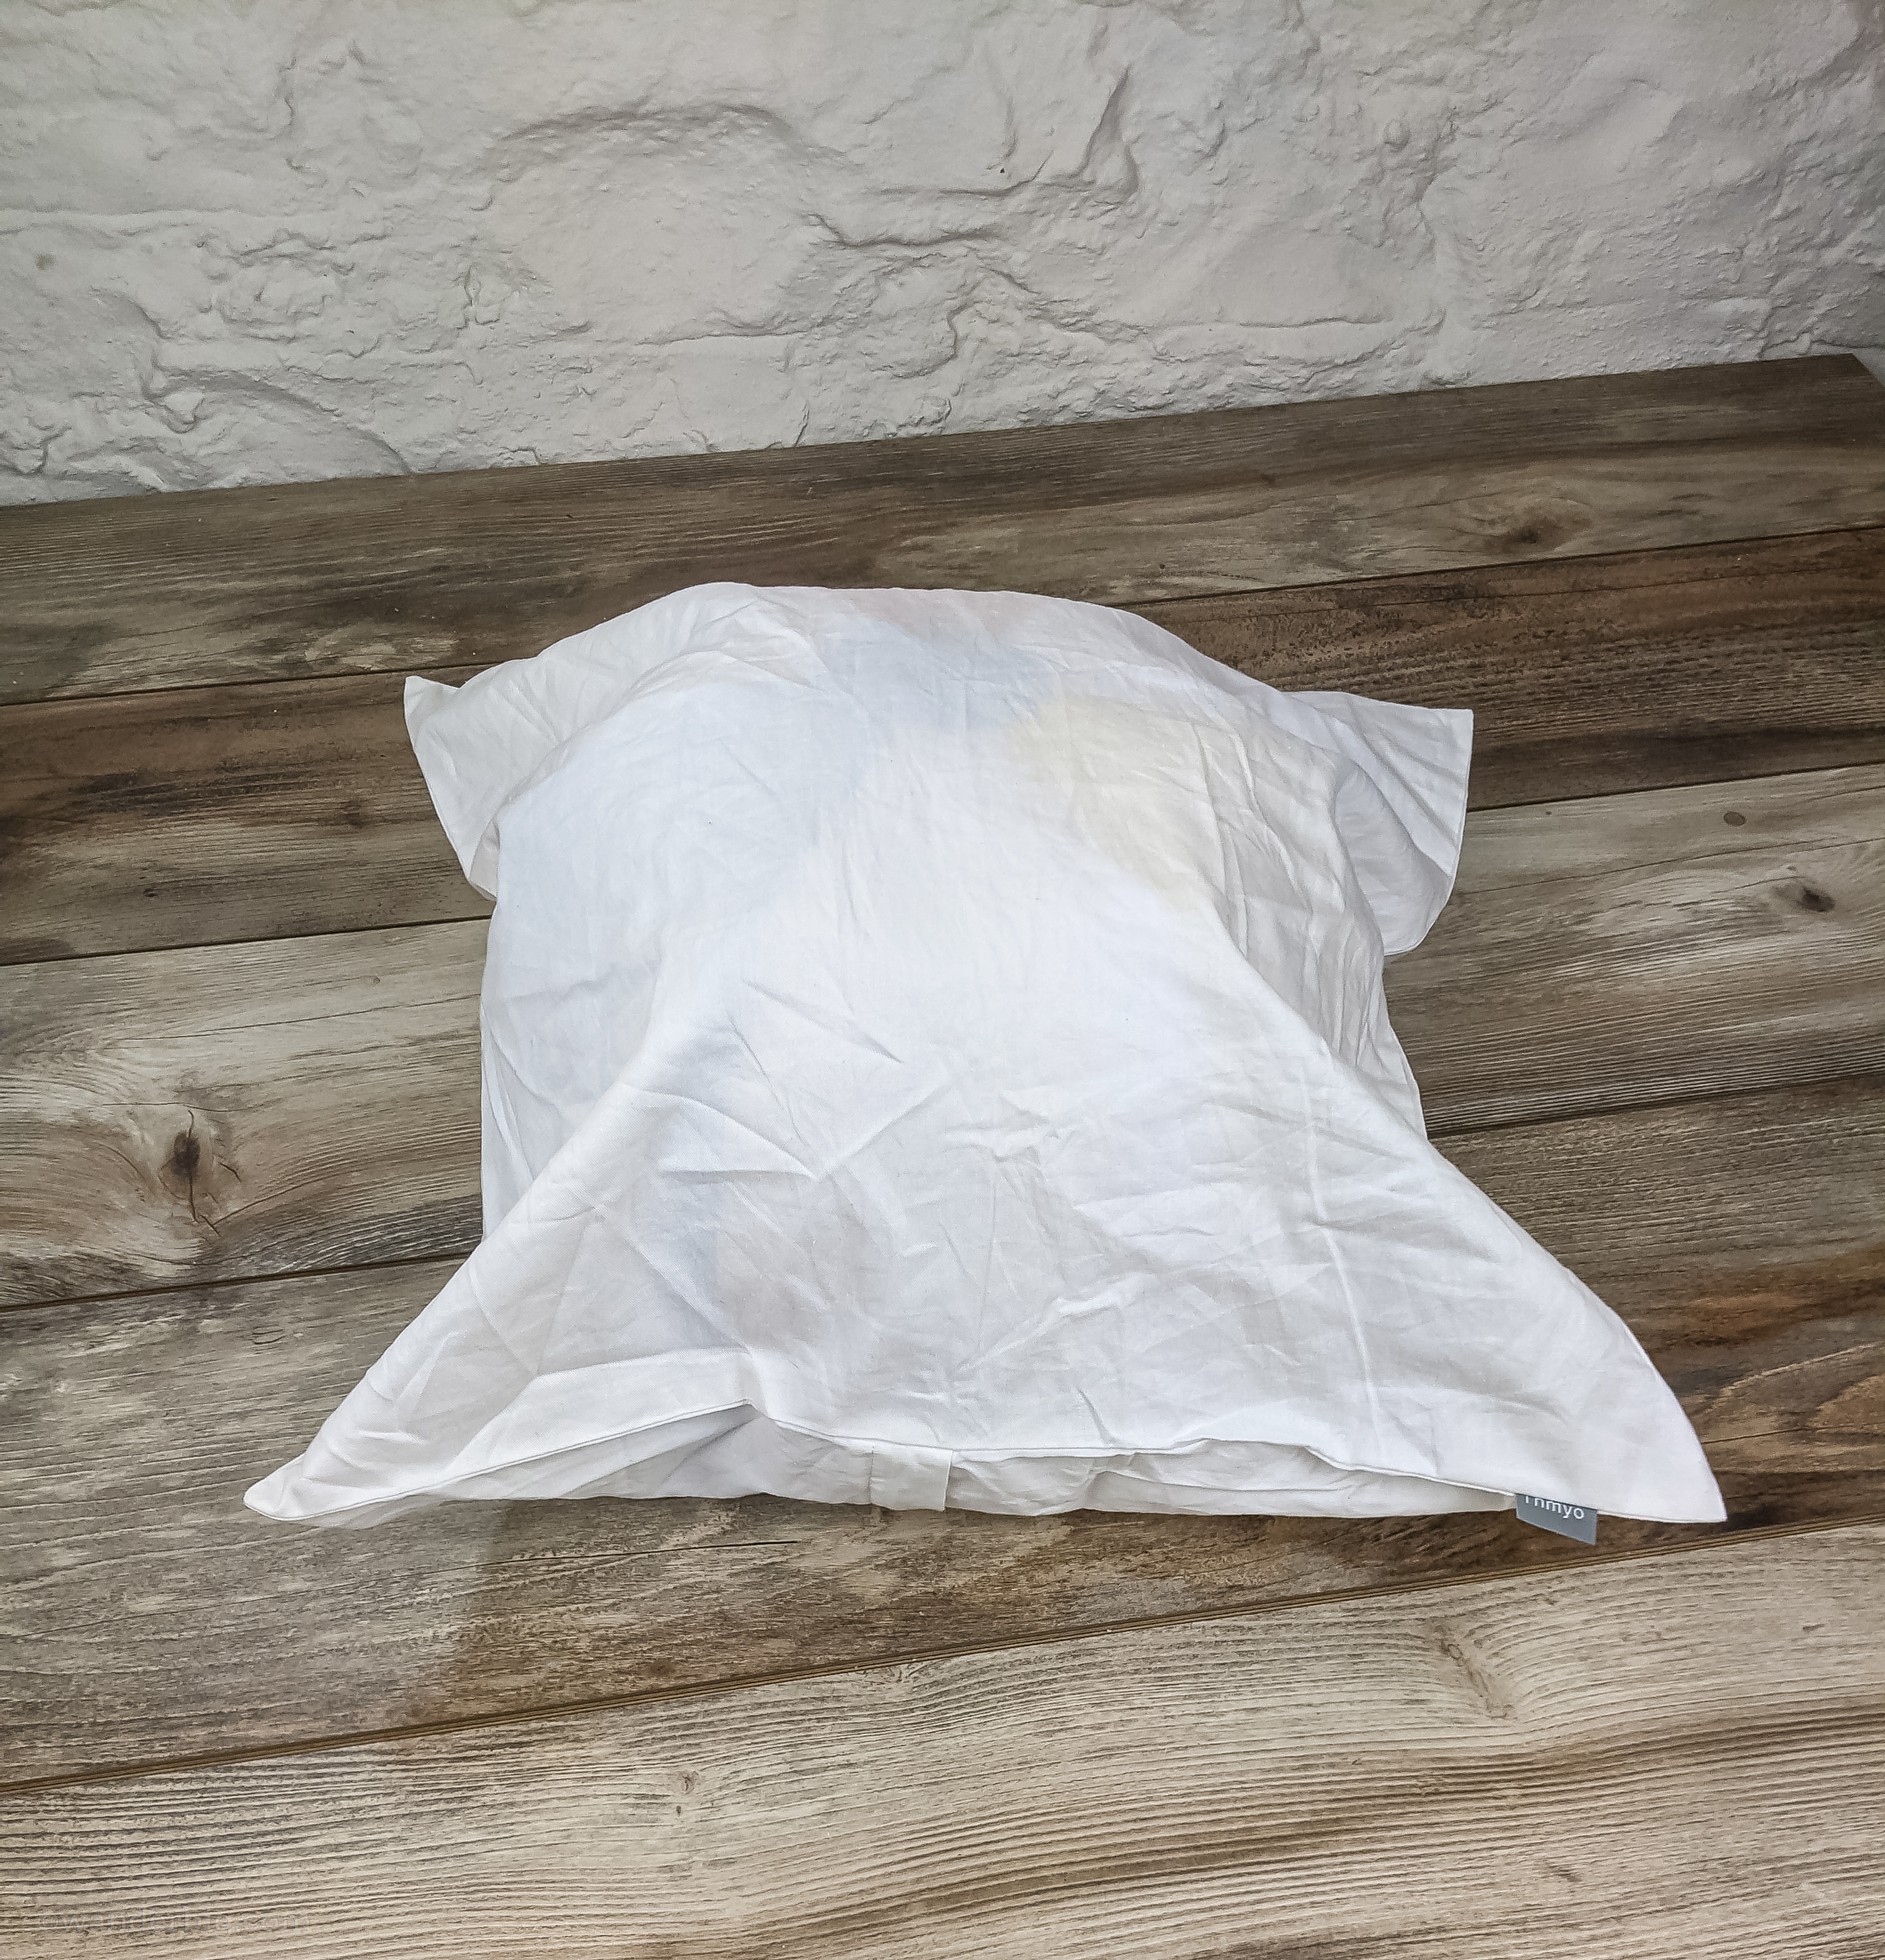 A diy travel pillow made from a beach ball inserted into a pillowcase.